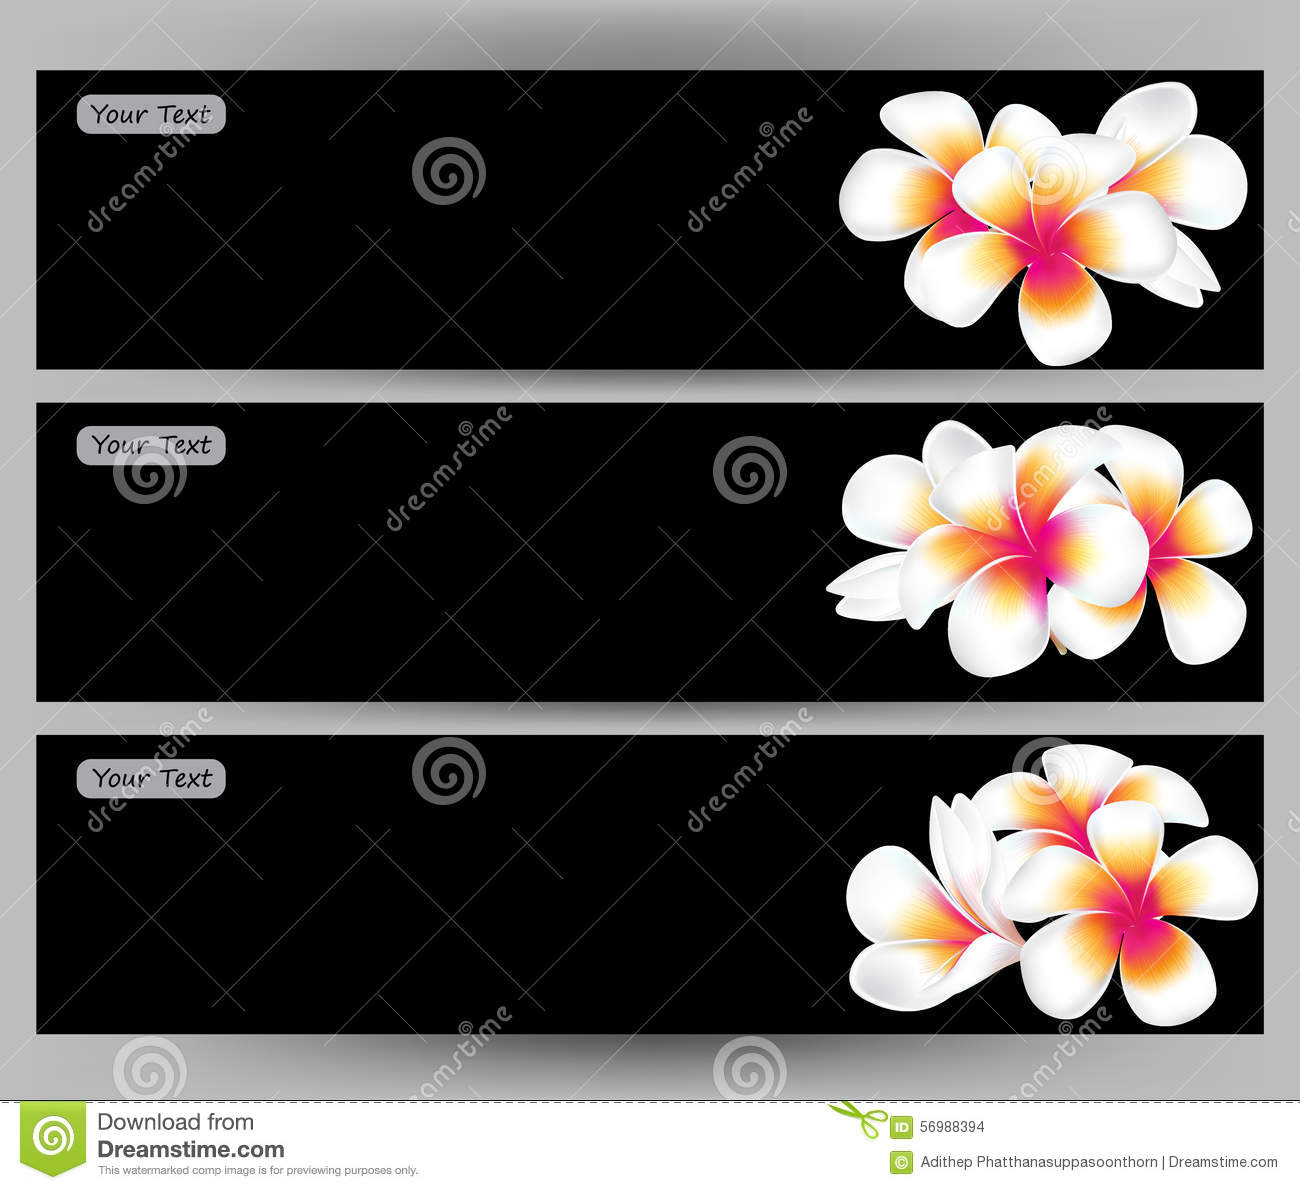 Illustration Of Hawaii Flower Frangipani White Plumeria Brochure